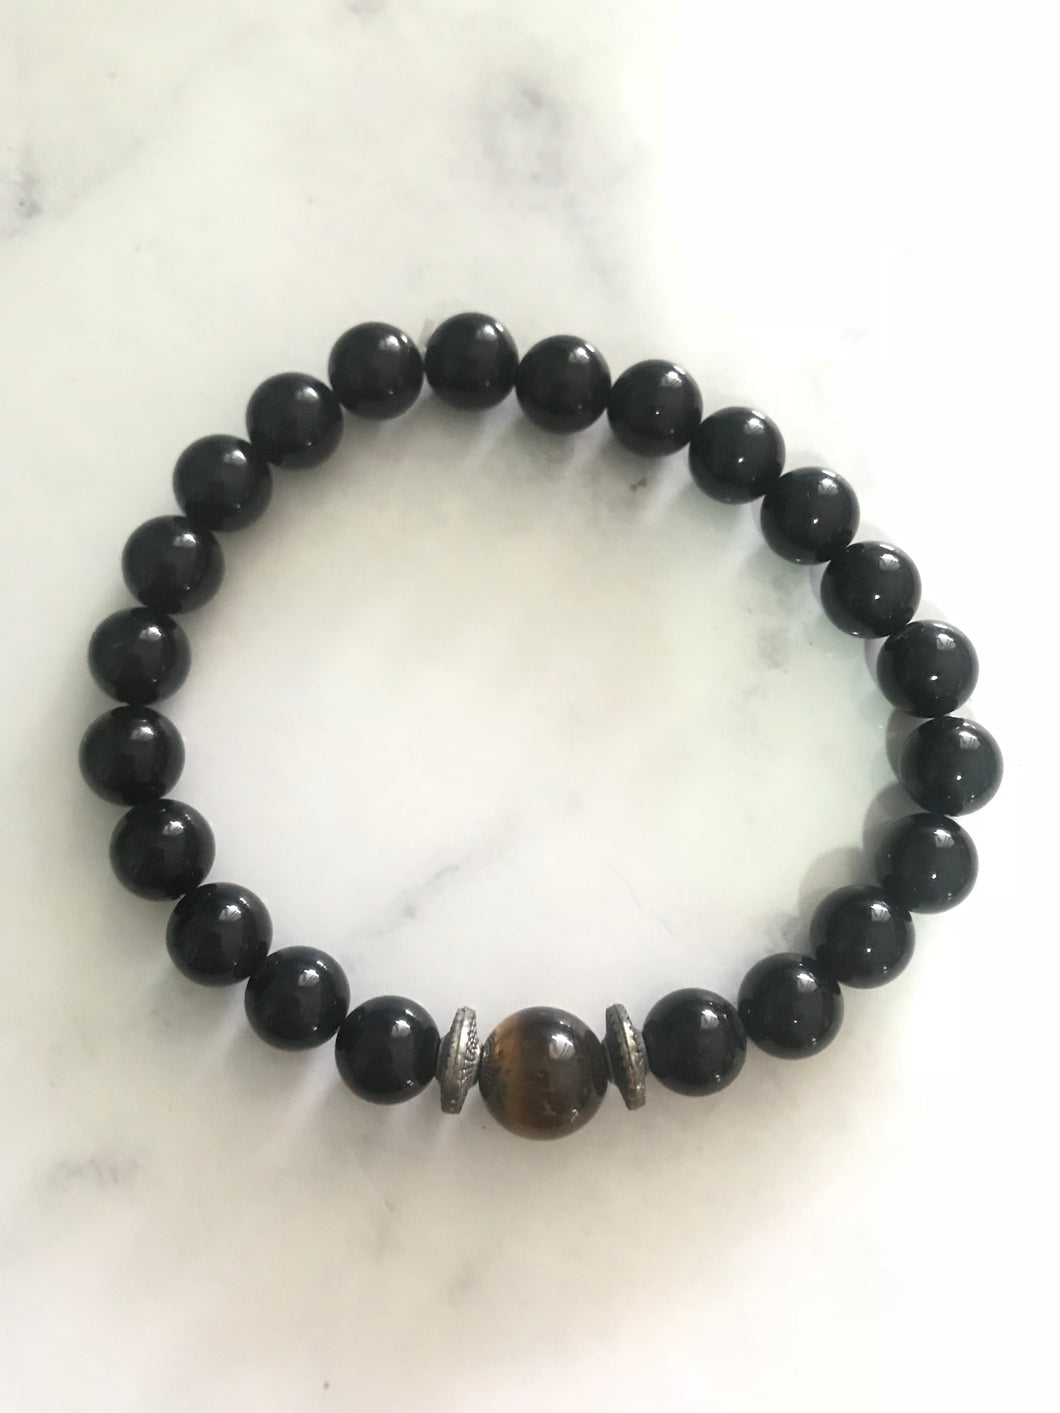 Unisex Bracelet - Black Onyx & Tiger Eye #15